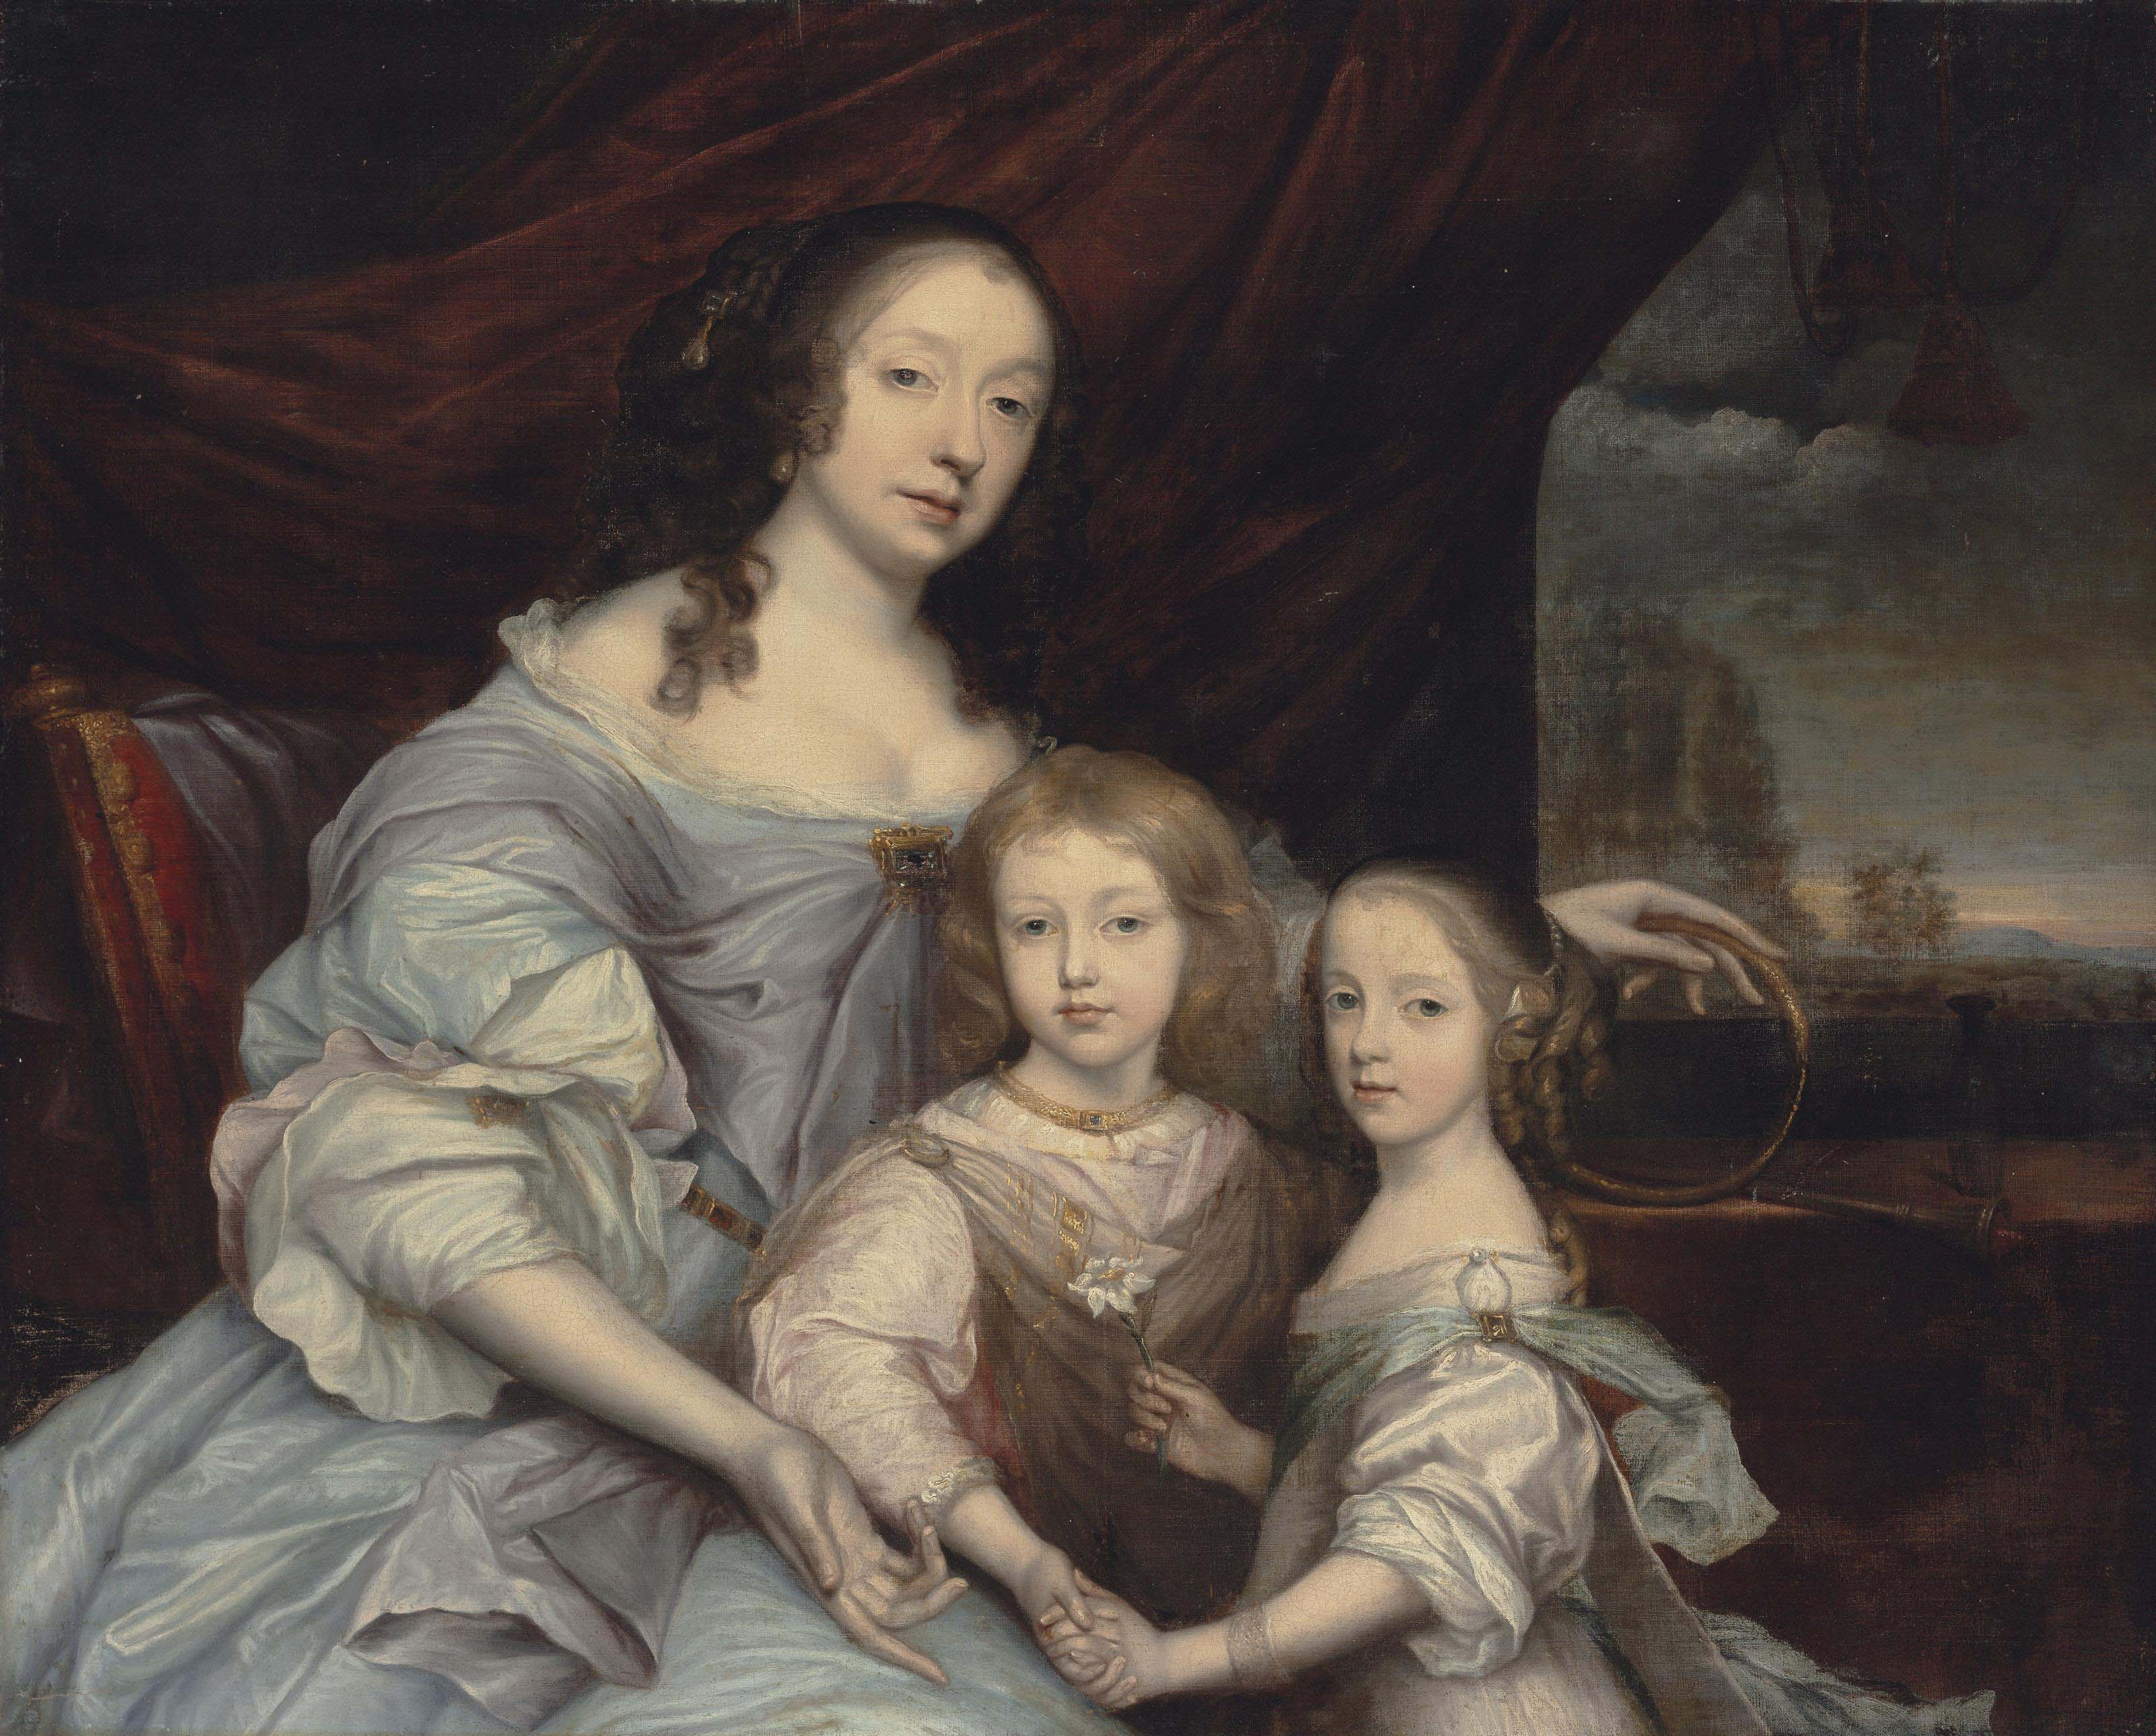 Portrait of Mary Villiers, Duchess of Lennox and Richmond (1622-1685), half-length, in a blue dress, her left hand resting on an Ouroboros, with her children, Esmé (1649-1660) and Mary (1651-1668) Stuart, before a draped curtain, a landscape beyond